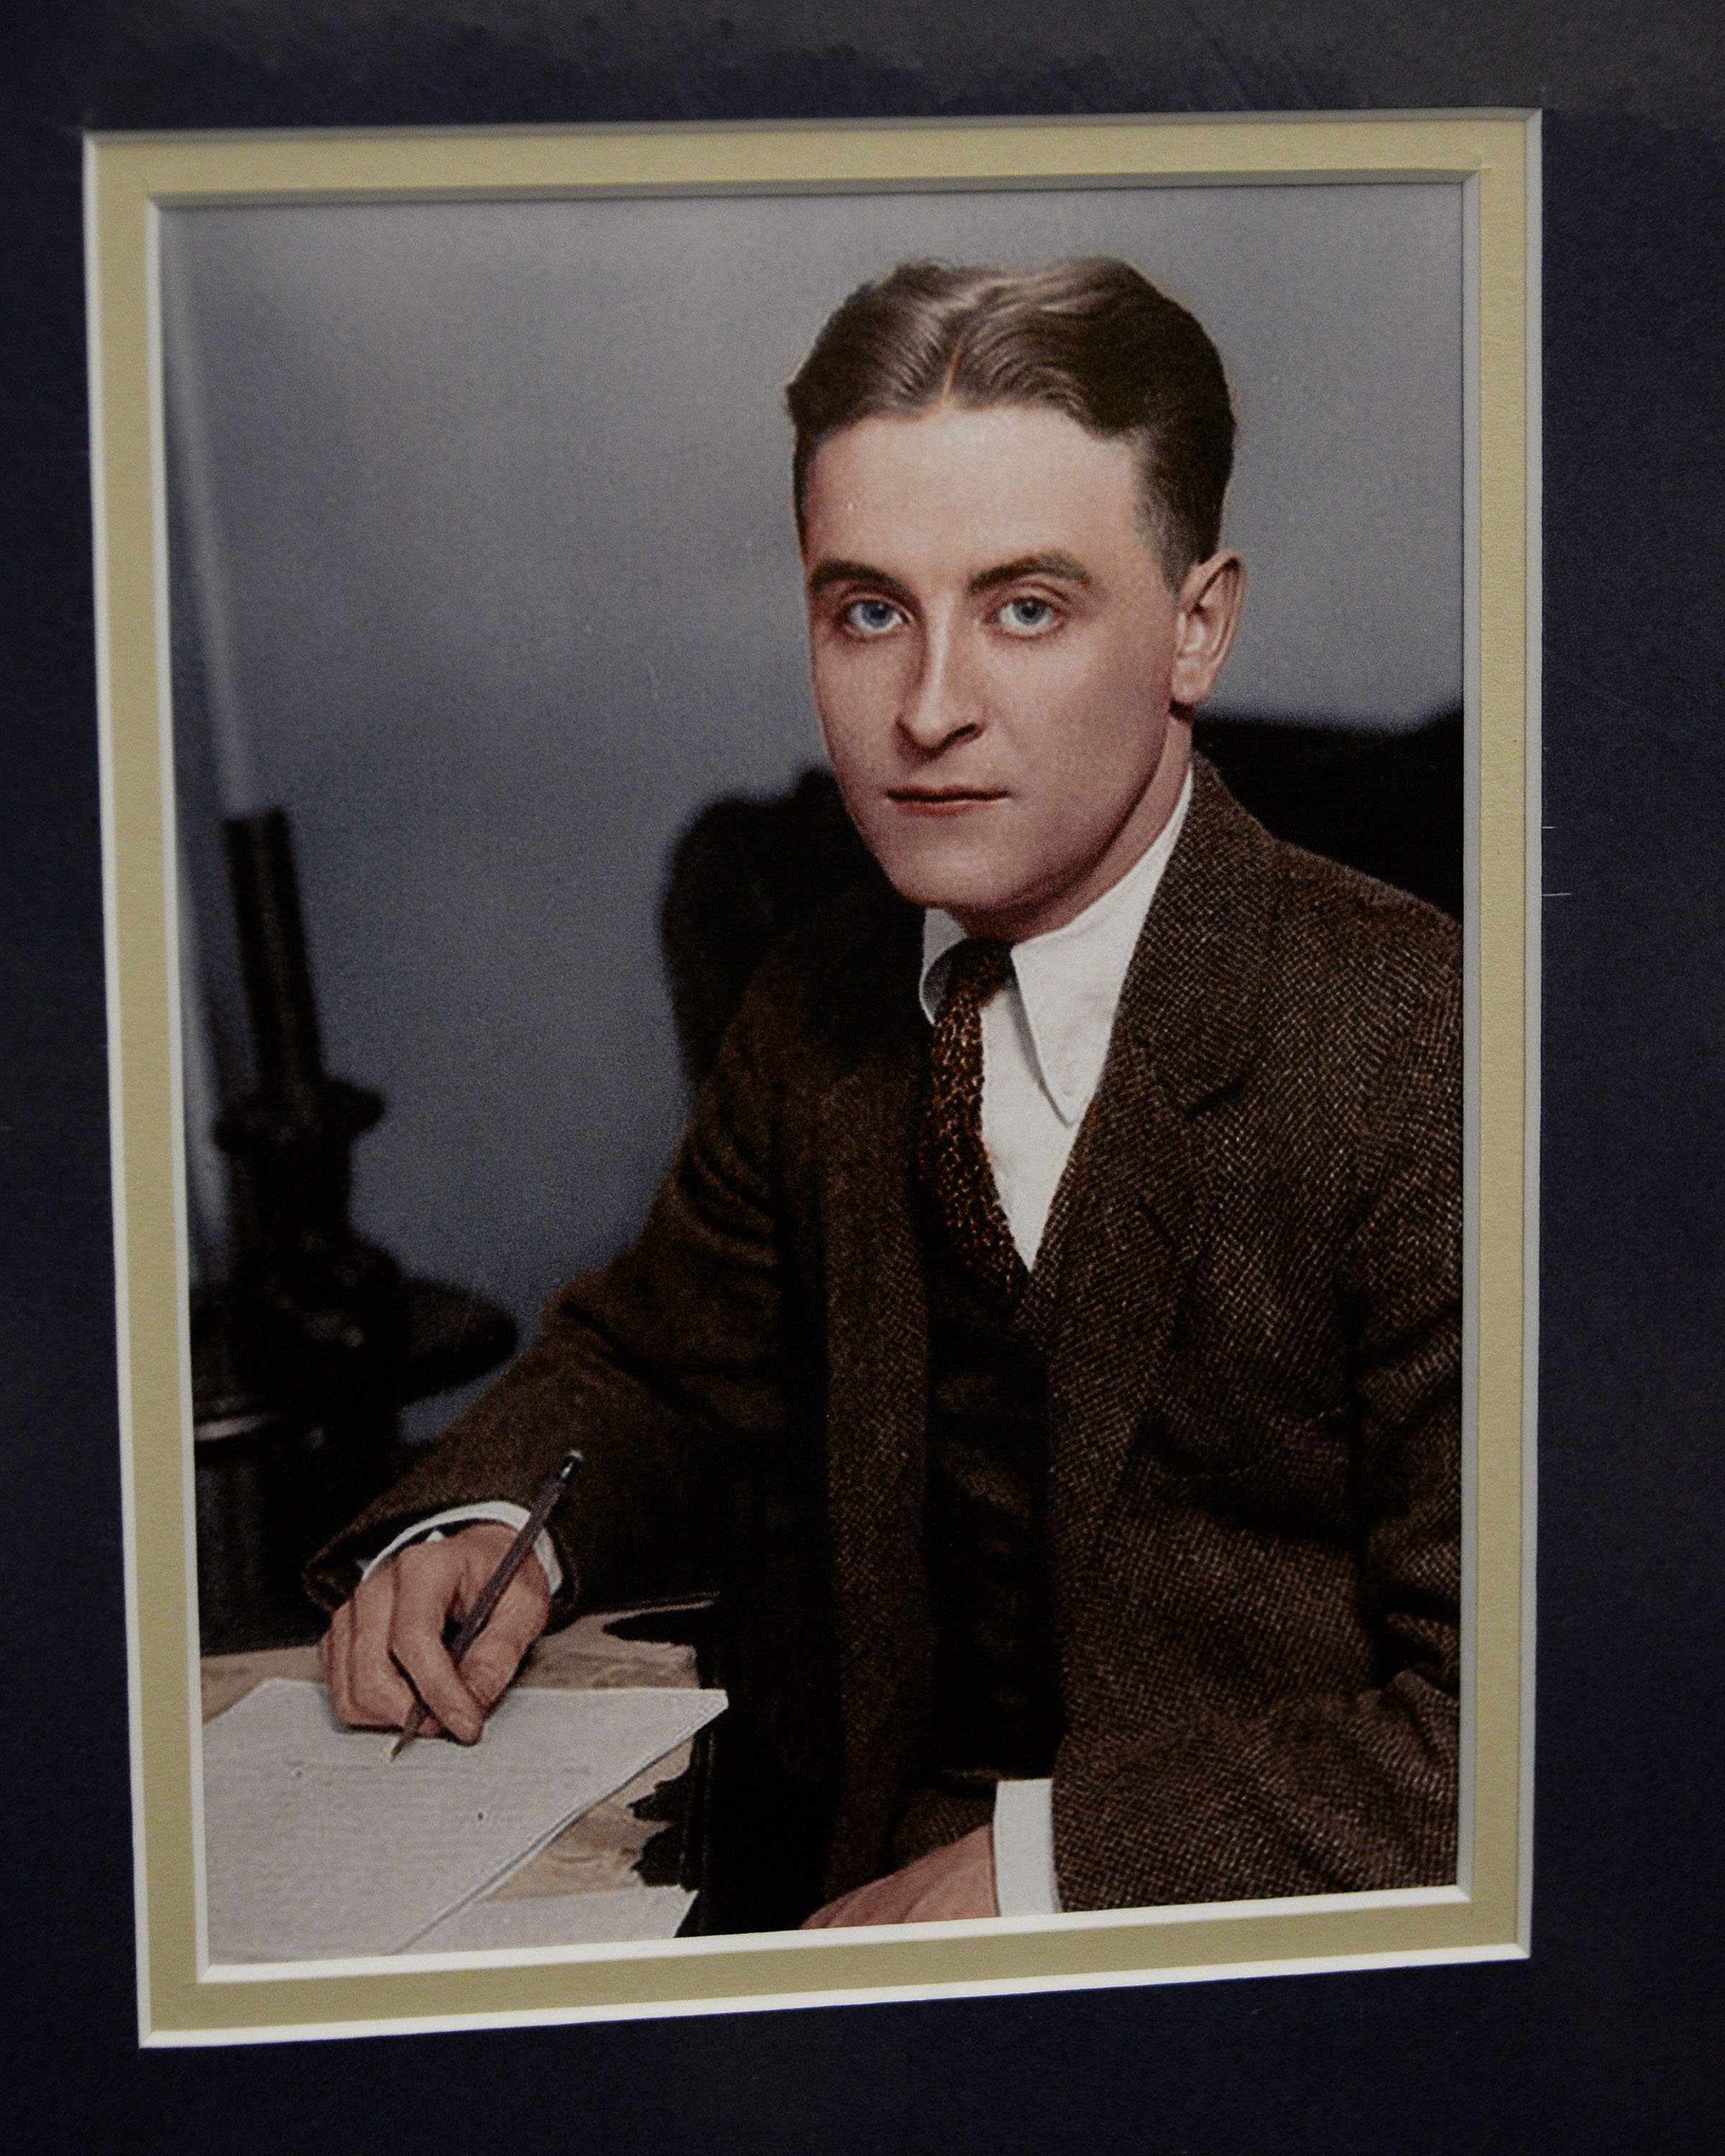 Soon you'll be able to read F. Scott Fitzgerald's unpublished short stories